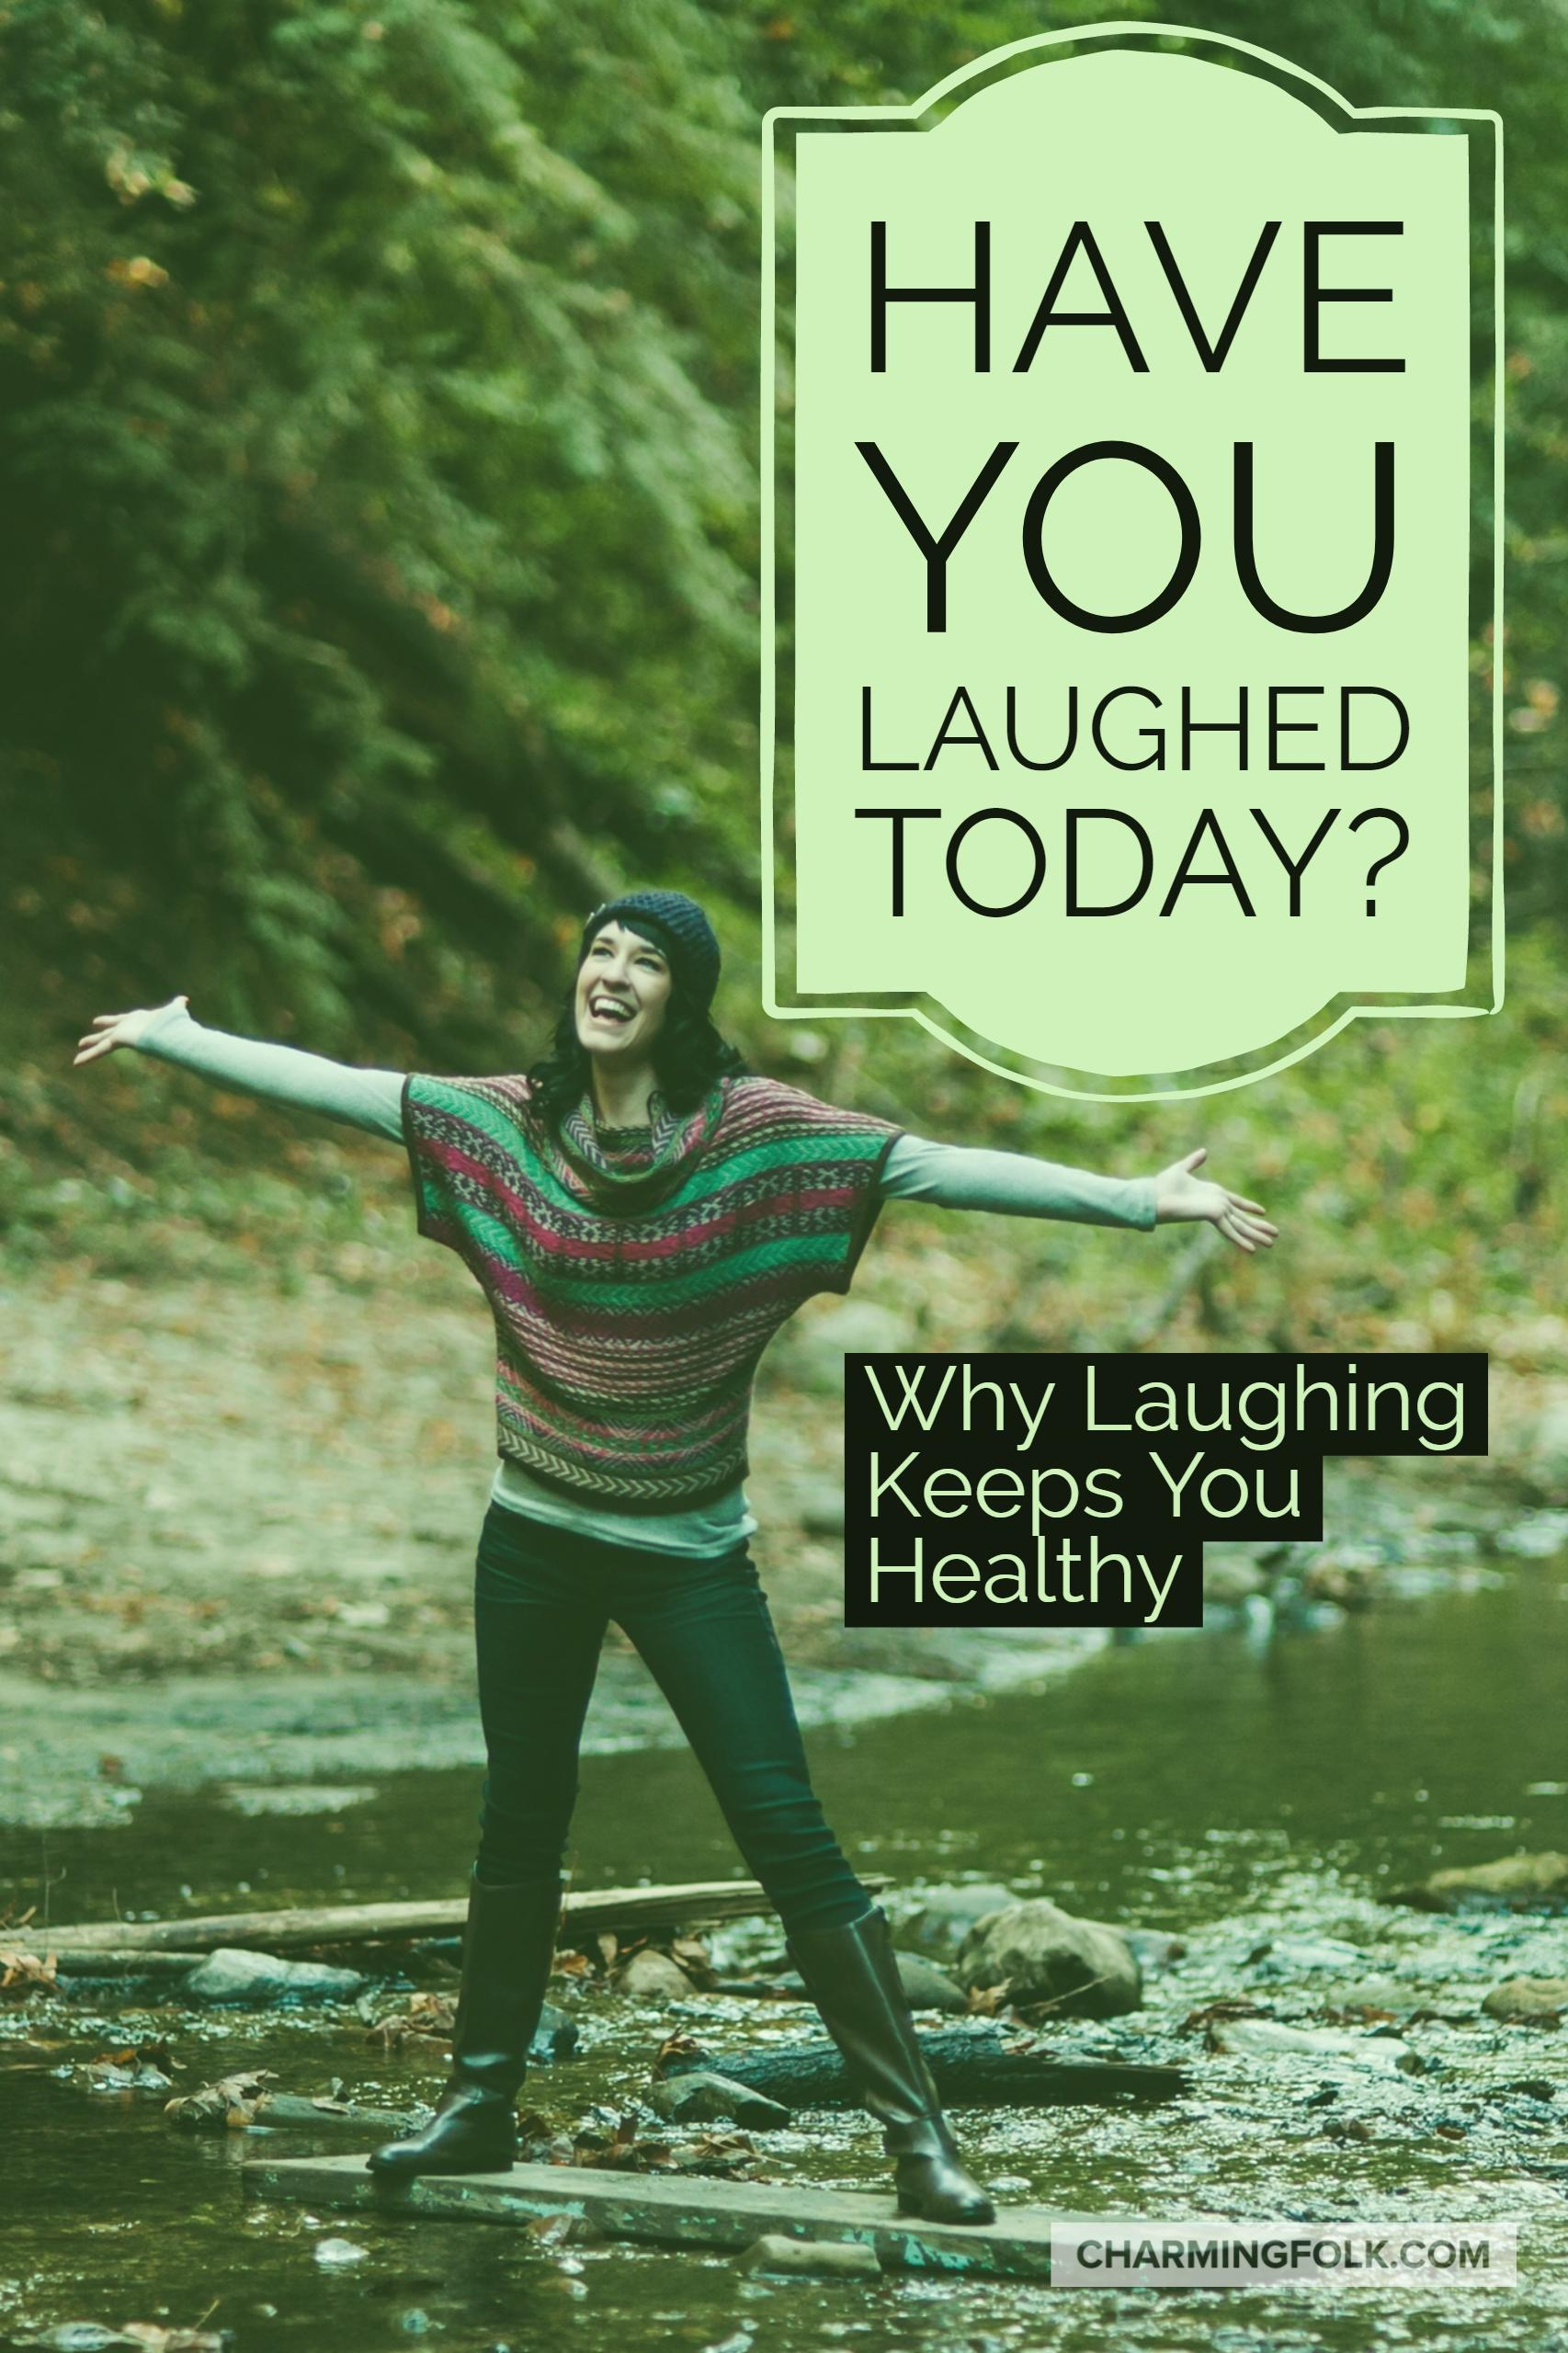 have-you-laughed-today-why-laughing-is-healthy-charmingfolk-pinterest.jpg